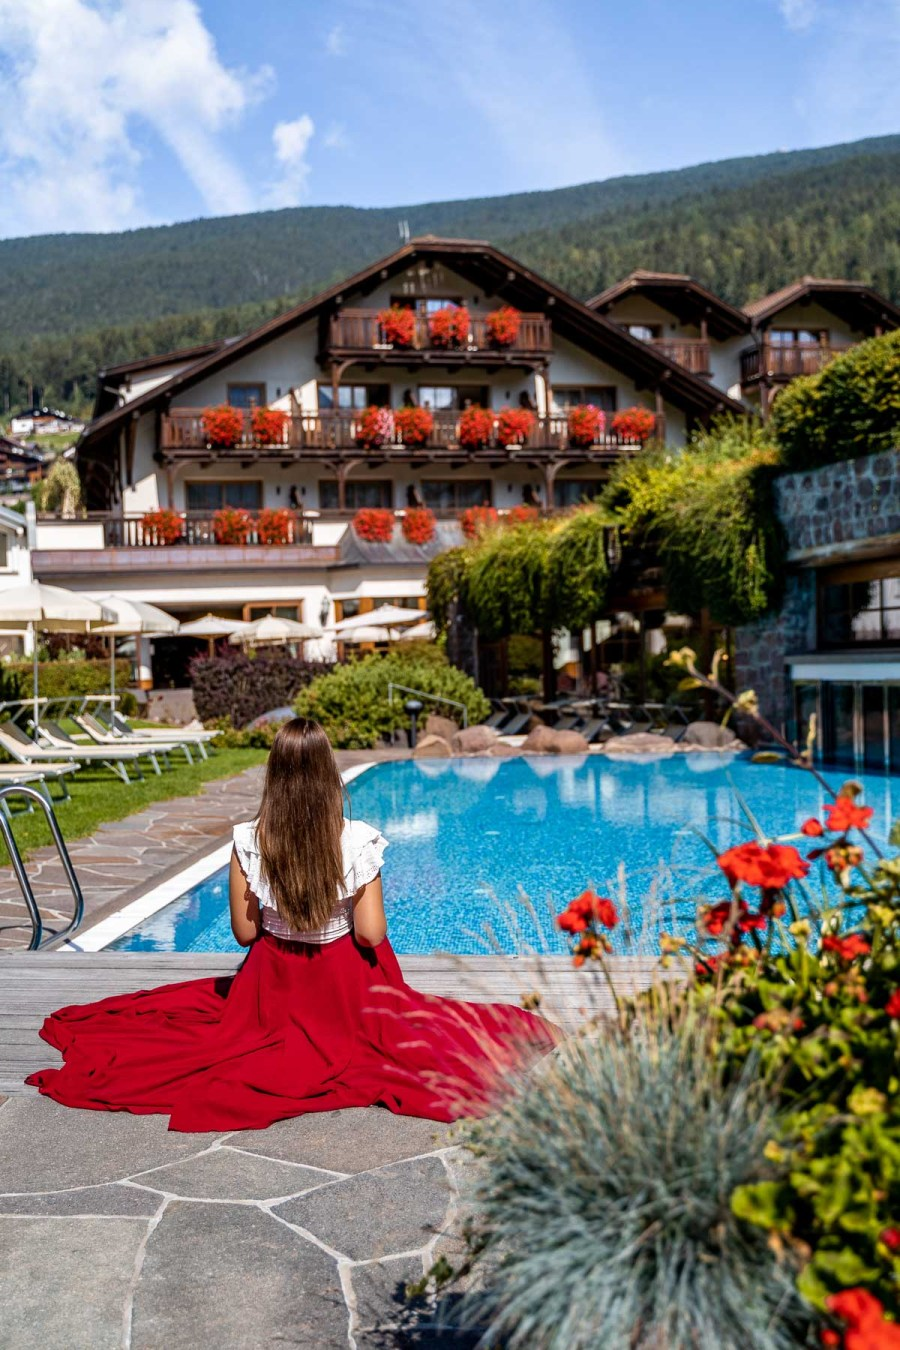 Girl in a red skirt sitting in front of the pool at Hotel Angelo Engel in Ortisei, Dolomites